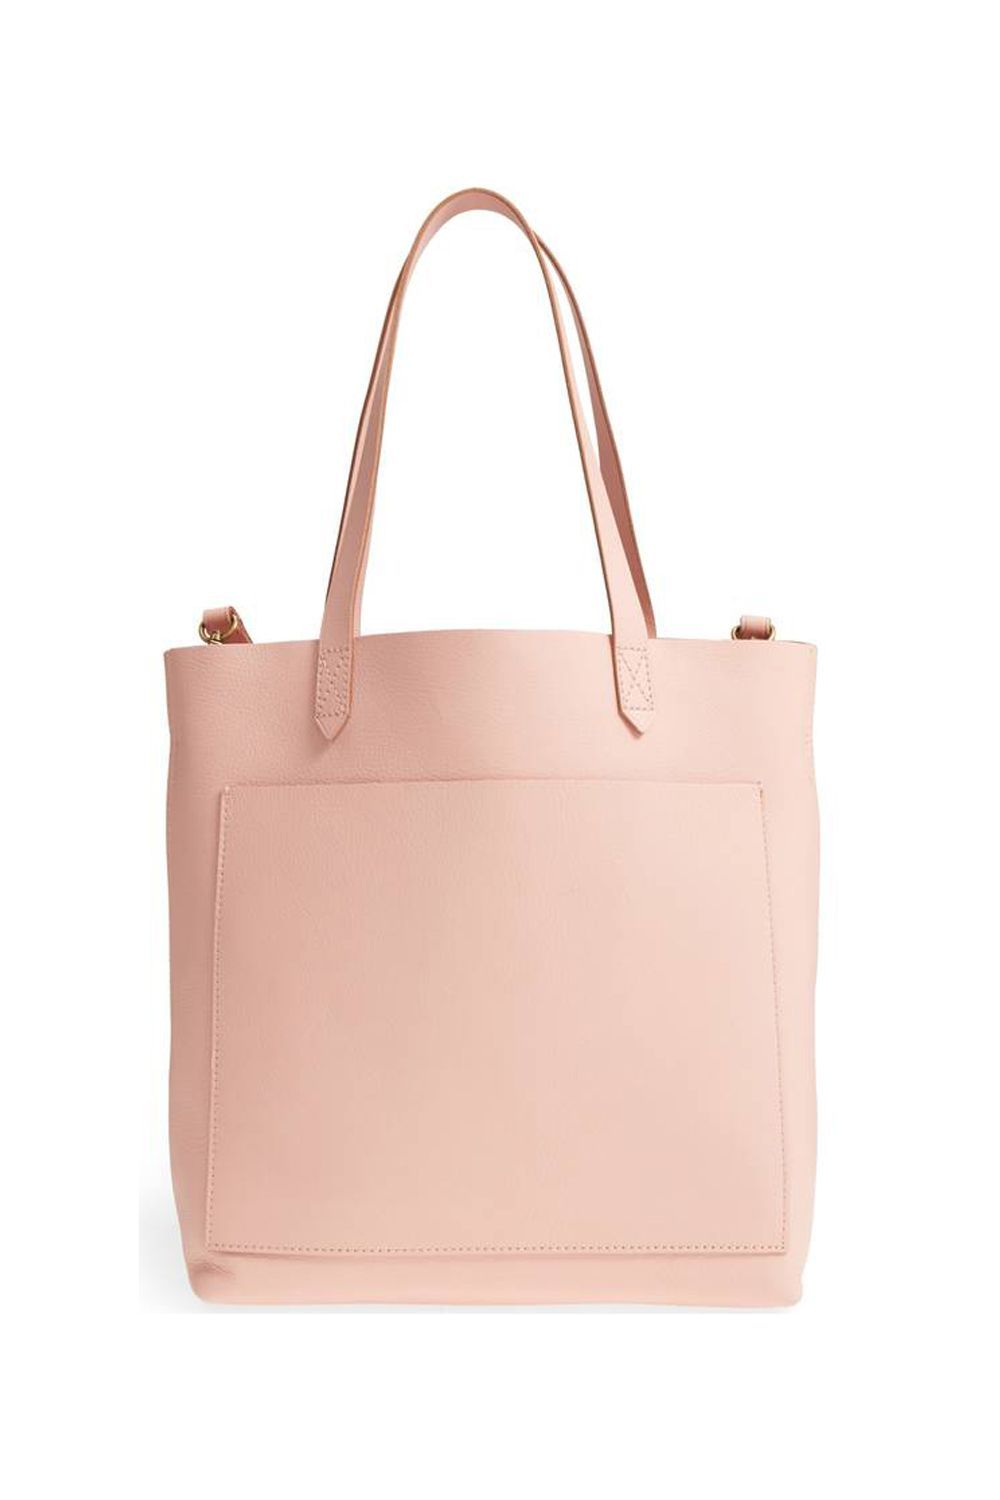 Pretty in Millennial Pink Madewell Nordstrom $158.00 SHOP IT If black isn't your thing, opt for this pretty pastel option that you'll never have trouble ID'ing at coat check.